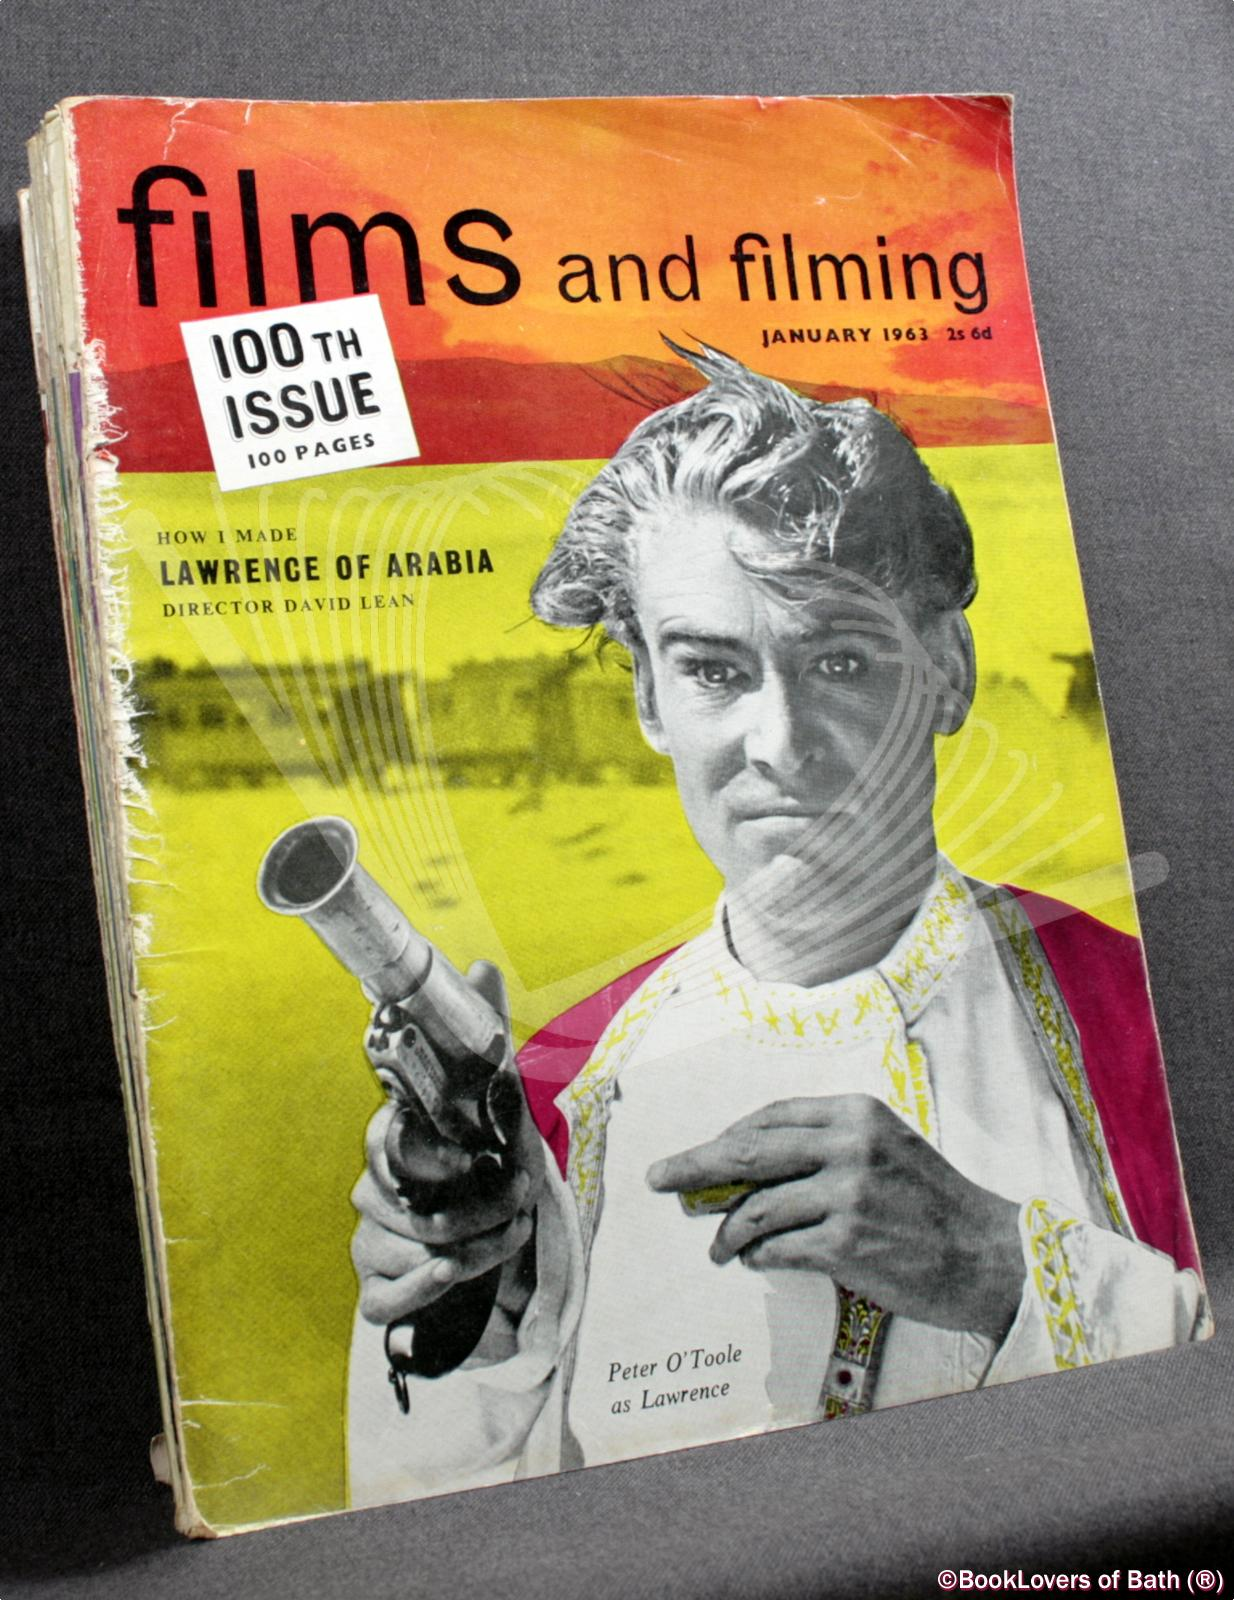 Films and Filming January 1963 Volume 9 Number 4 to December 1963 Volume 10 Number 3 - Edited by Peter Baker